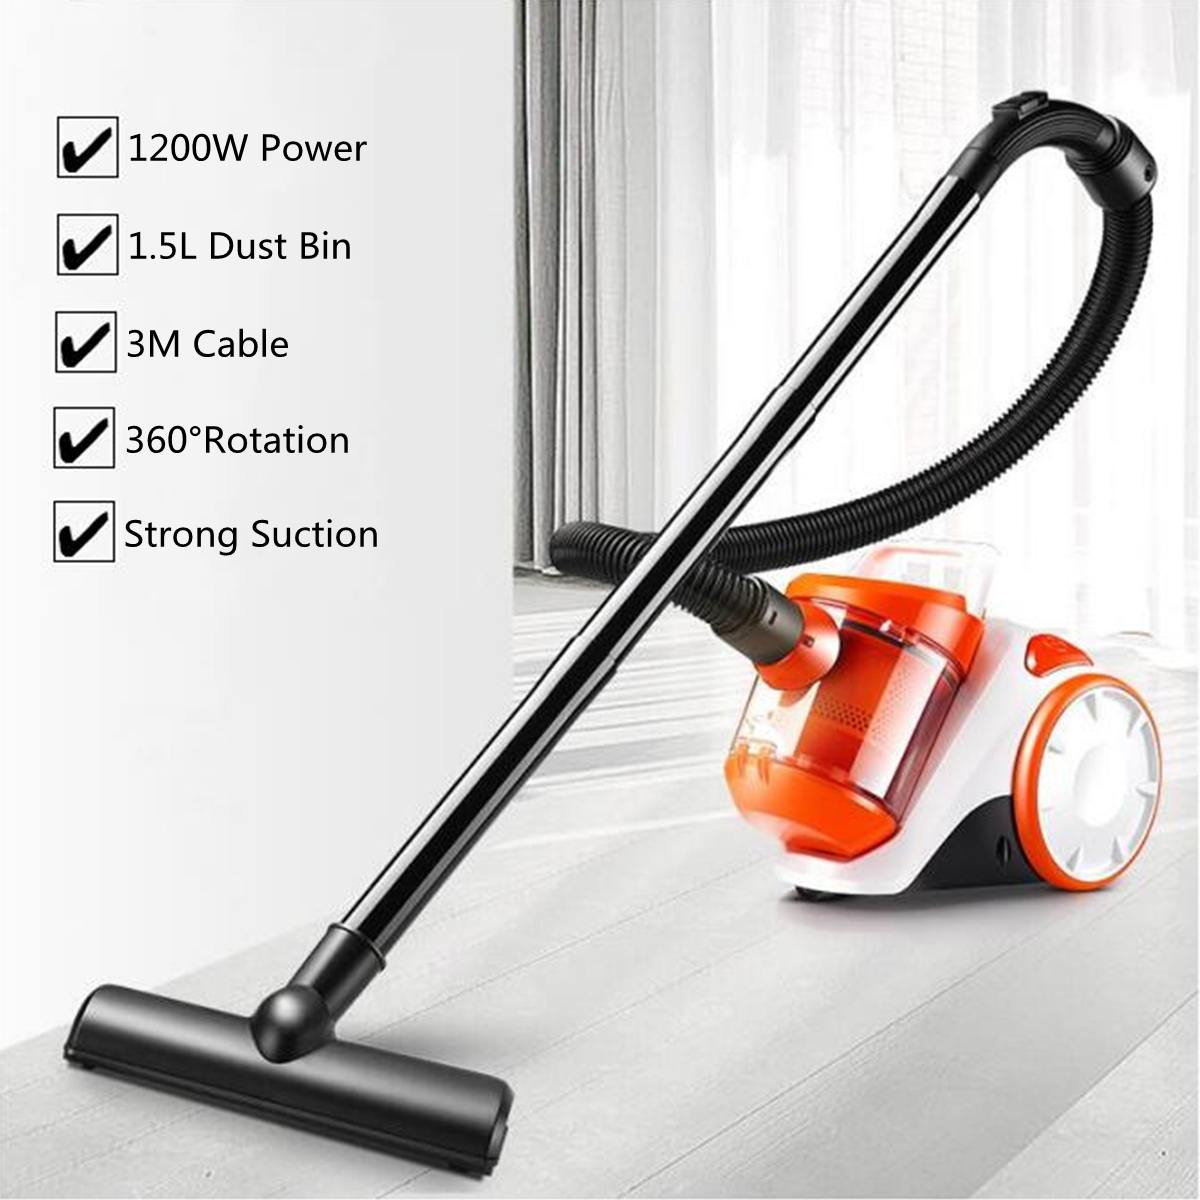 Black Corded Handheld Home &Commercial Vacuum Cleaner Aspirator Large Suction Capacity Powerful Aspirator AppliancesBlack Corded Handheld Home &Commercial Vacuum Cleaner Aspirator Large Suction Capacity Powerful Aspirator Appliances